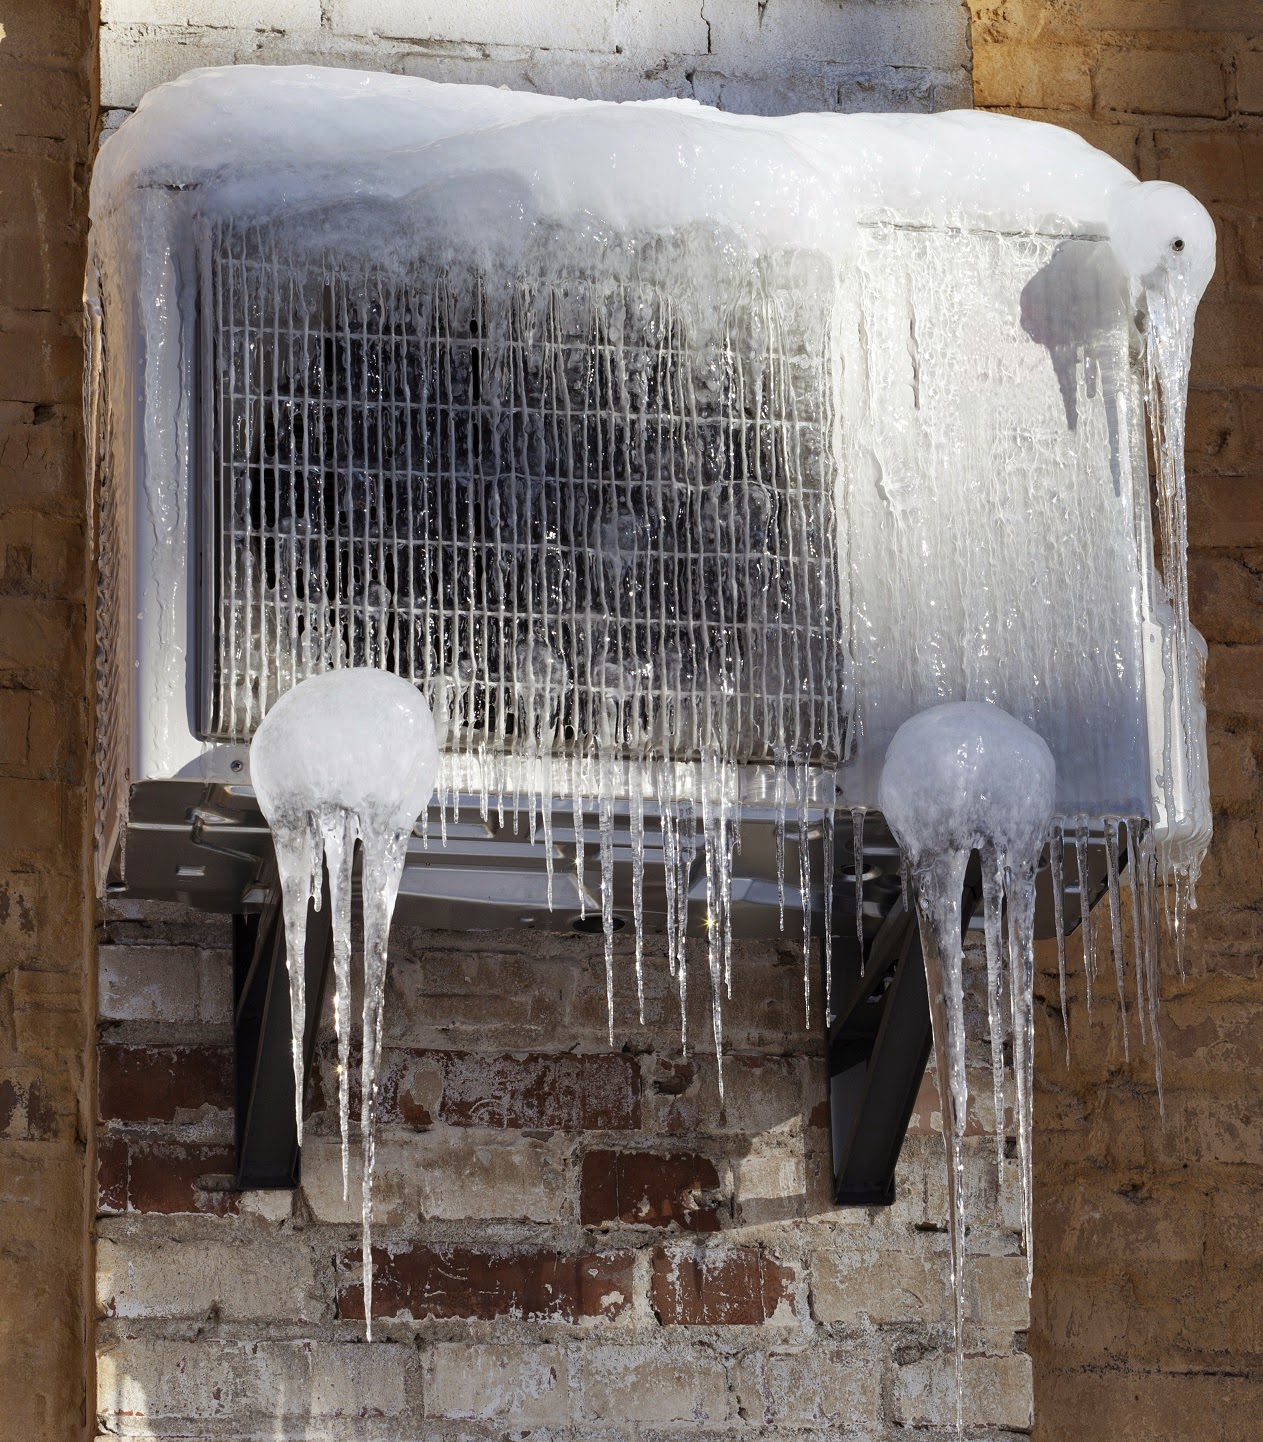 Why should I remove my window air conditioner during the winter? #5E4736